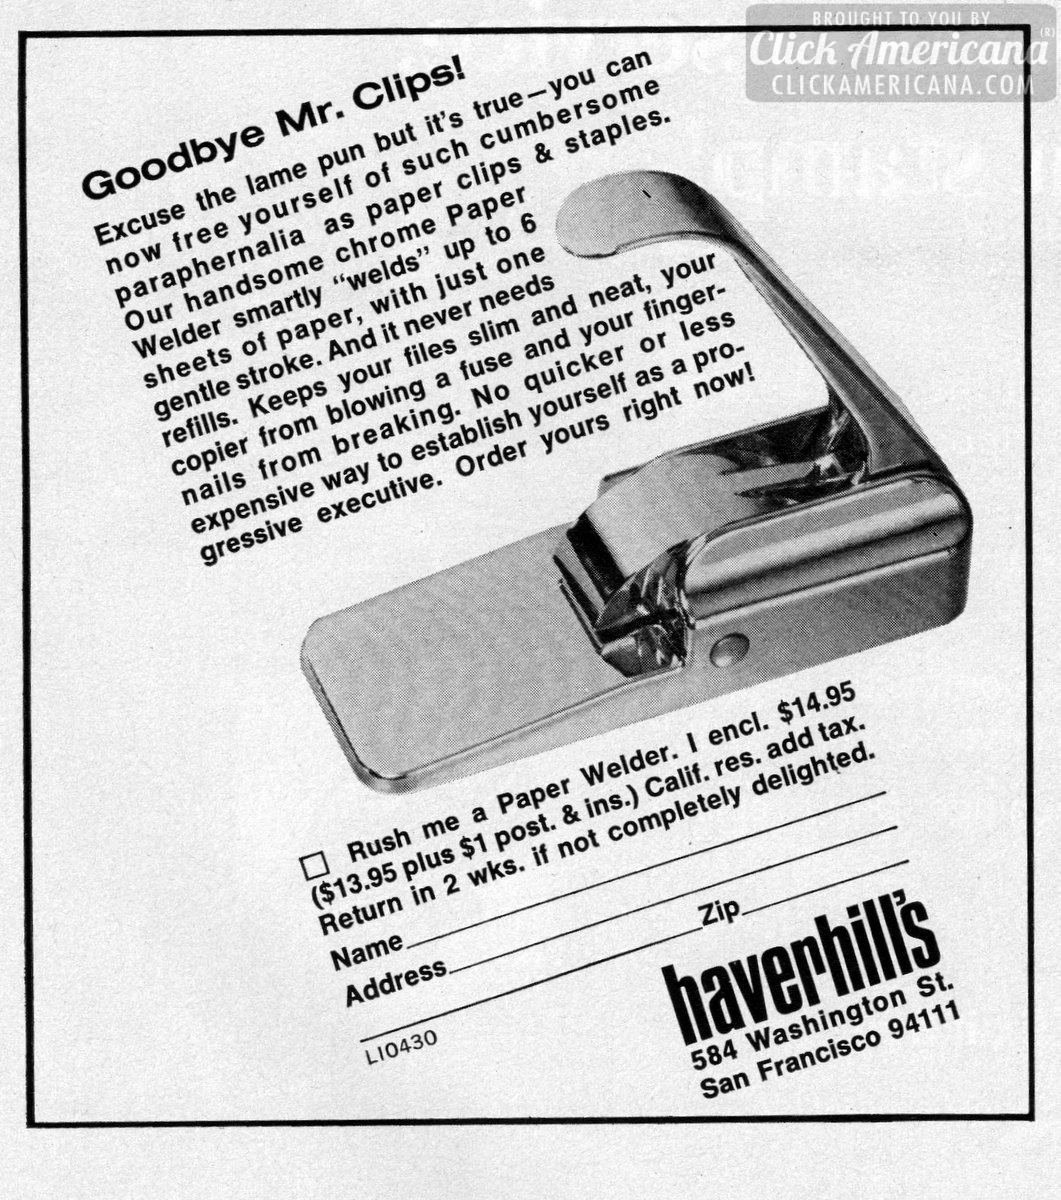 Goodbye Mr Clips: Get the new Paper Welder (1971)